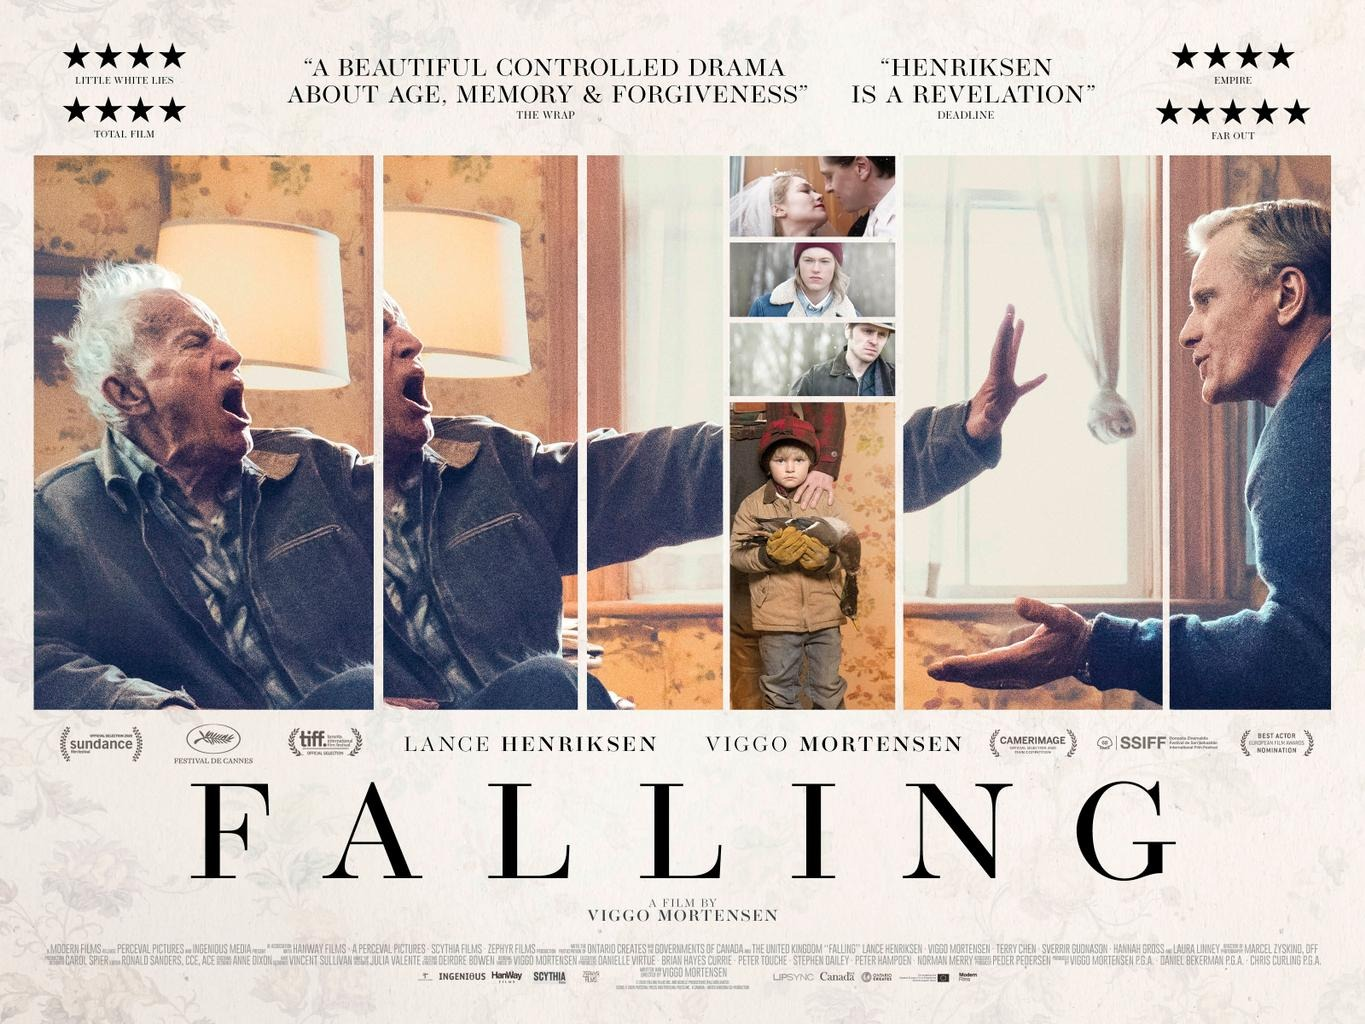 DF Congratulates Viggo Mortensen on 'FALLING', his Feature Film Directorial Debut